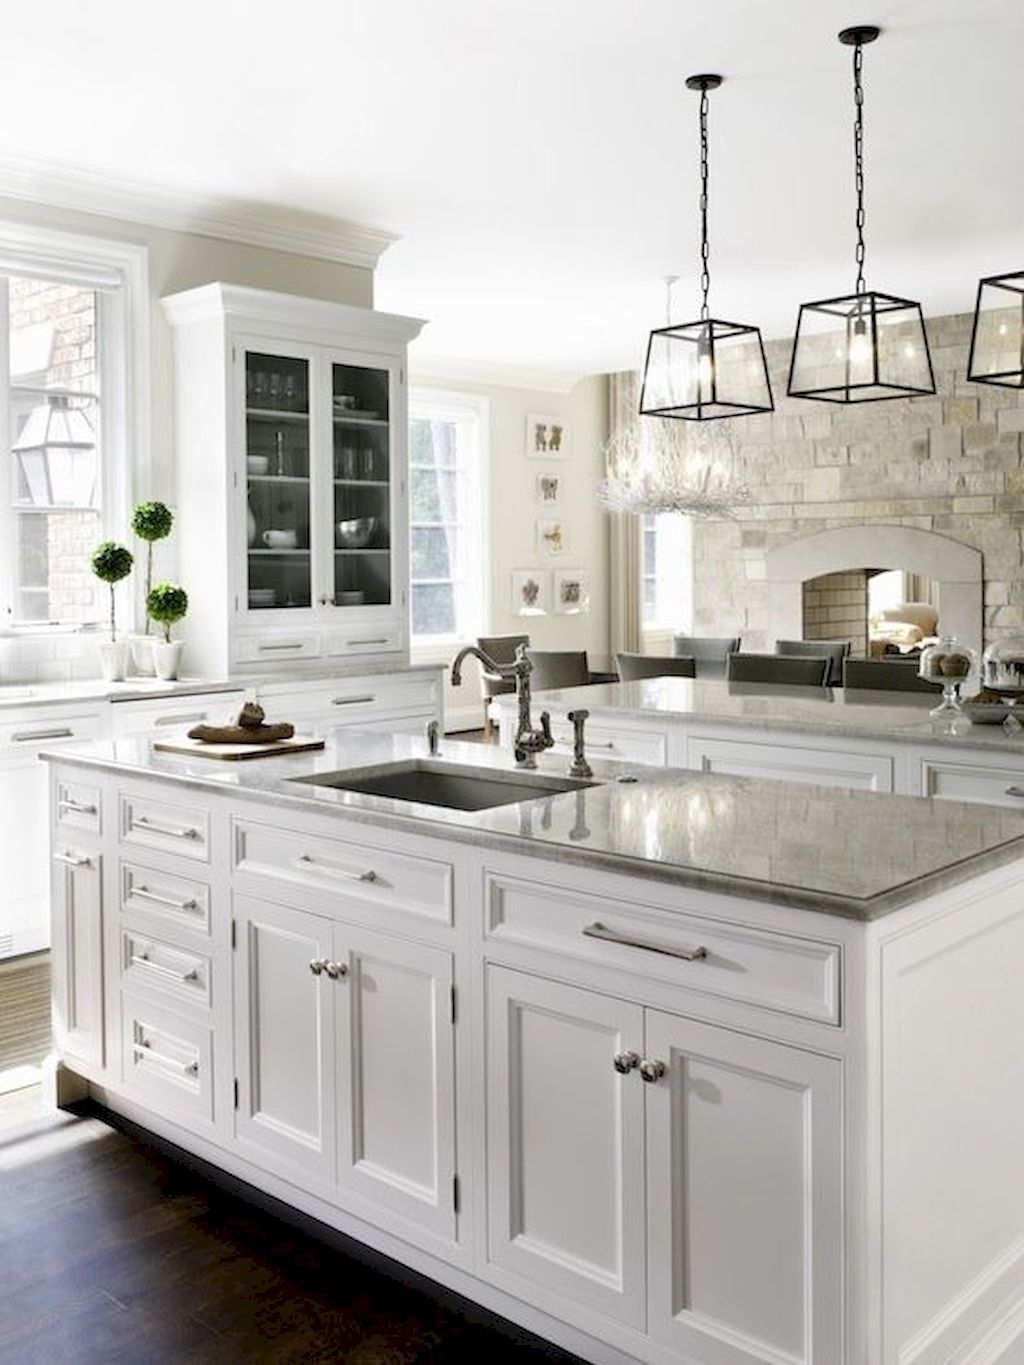 90 White Kitchen Cabinet Design Ideas   HomeSpecially